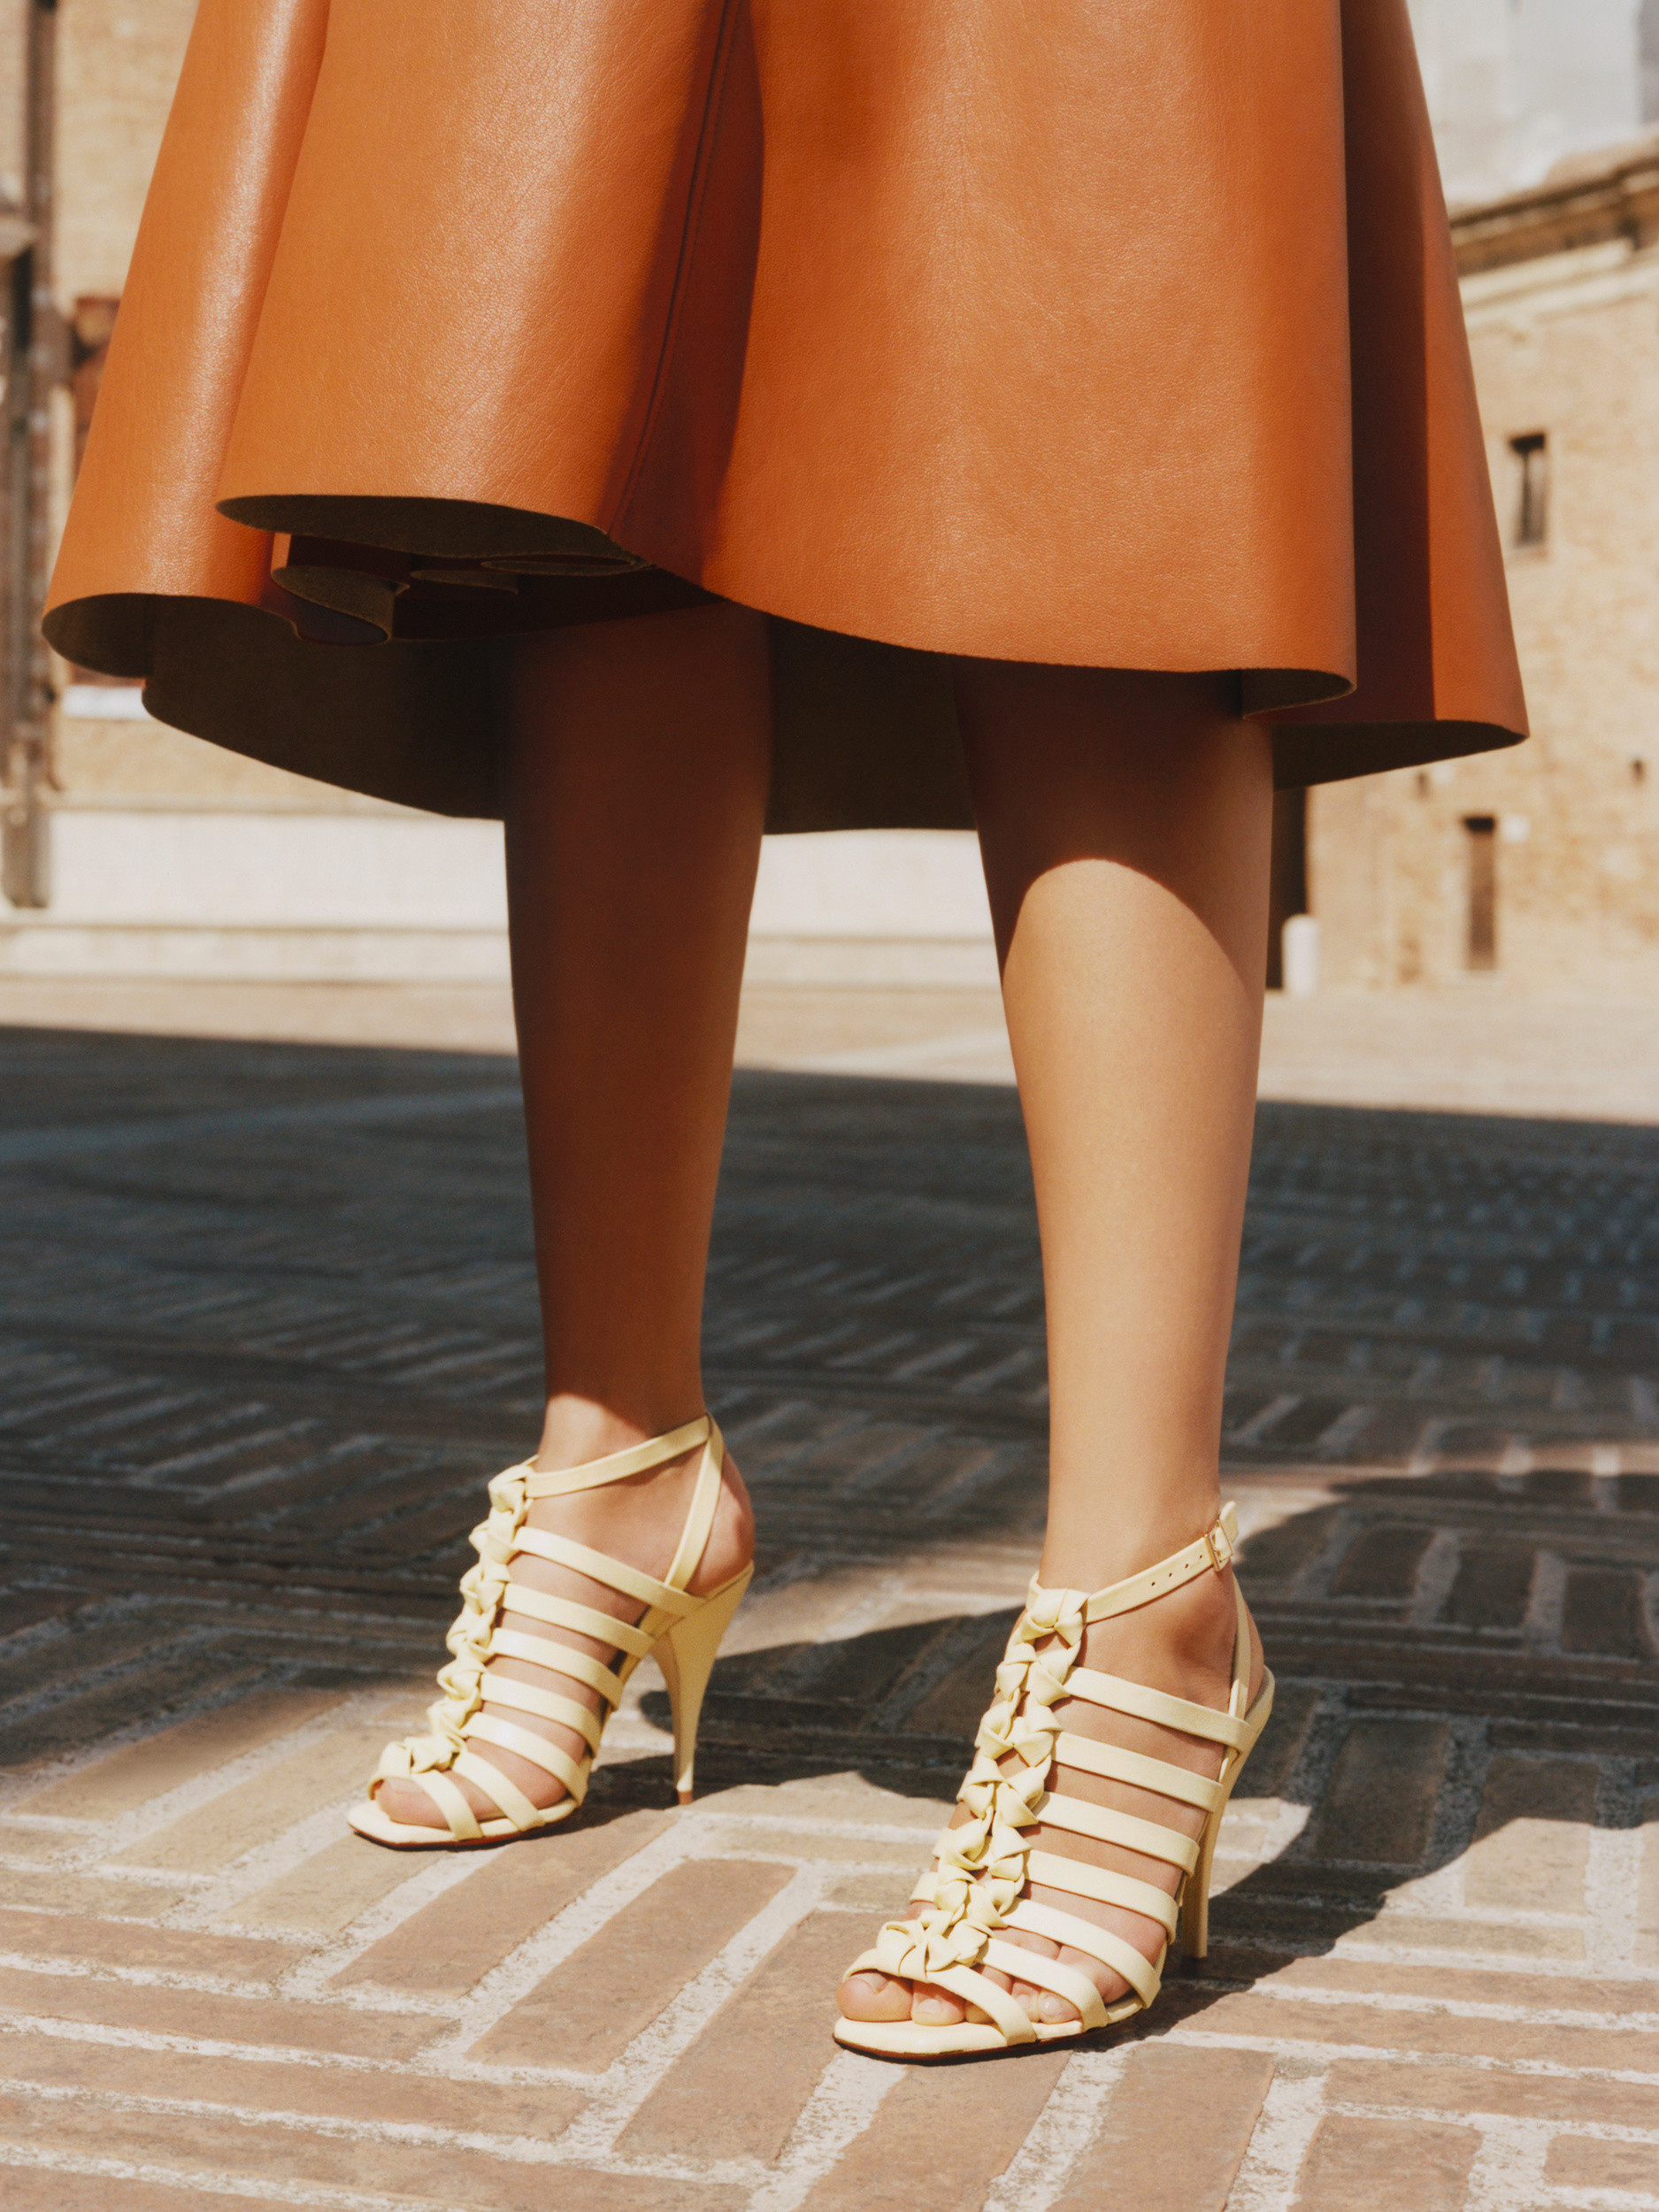 A style from Santoni's spring 2021 collection.